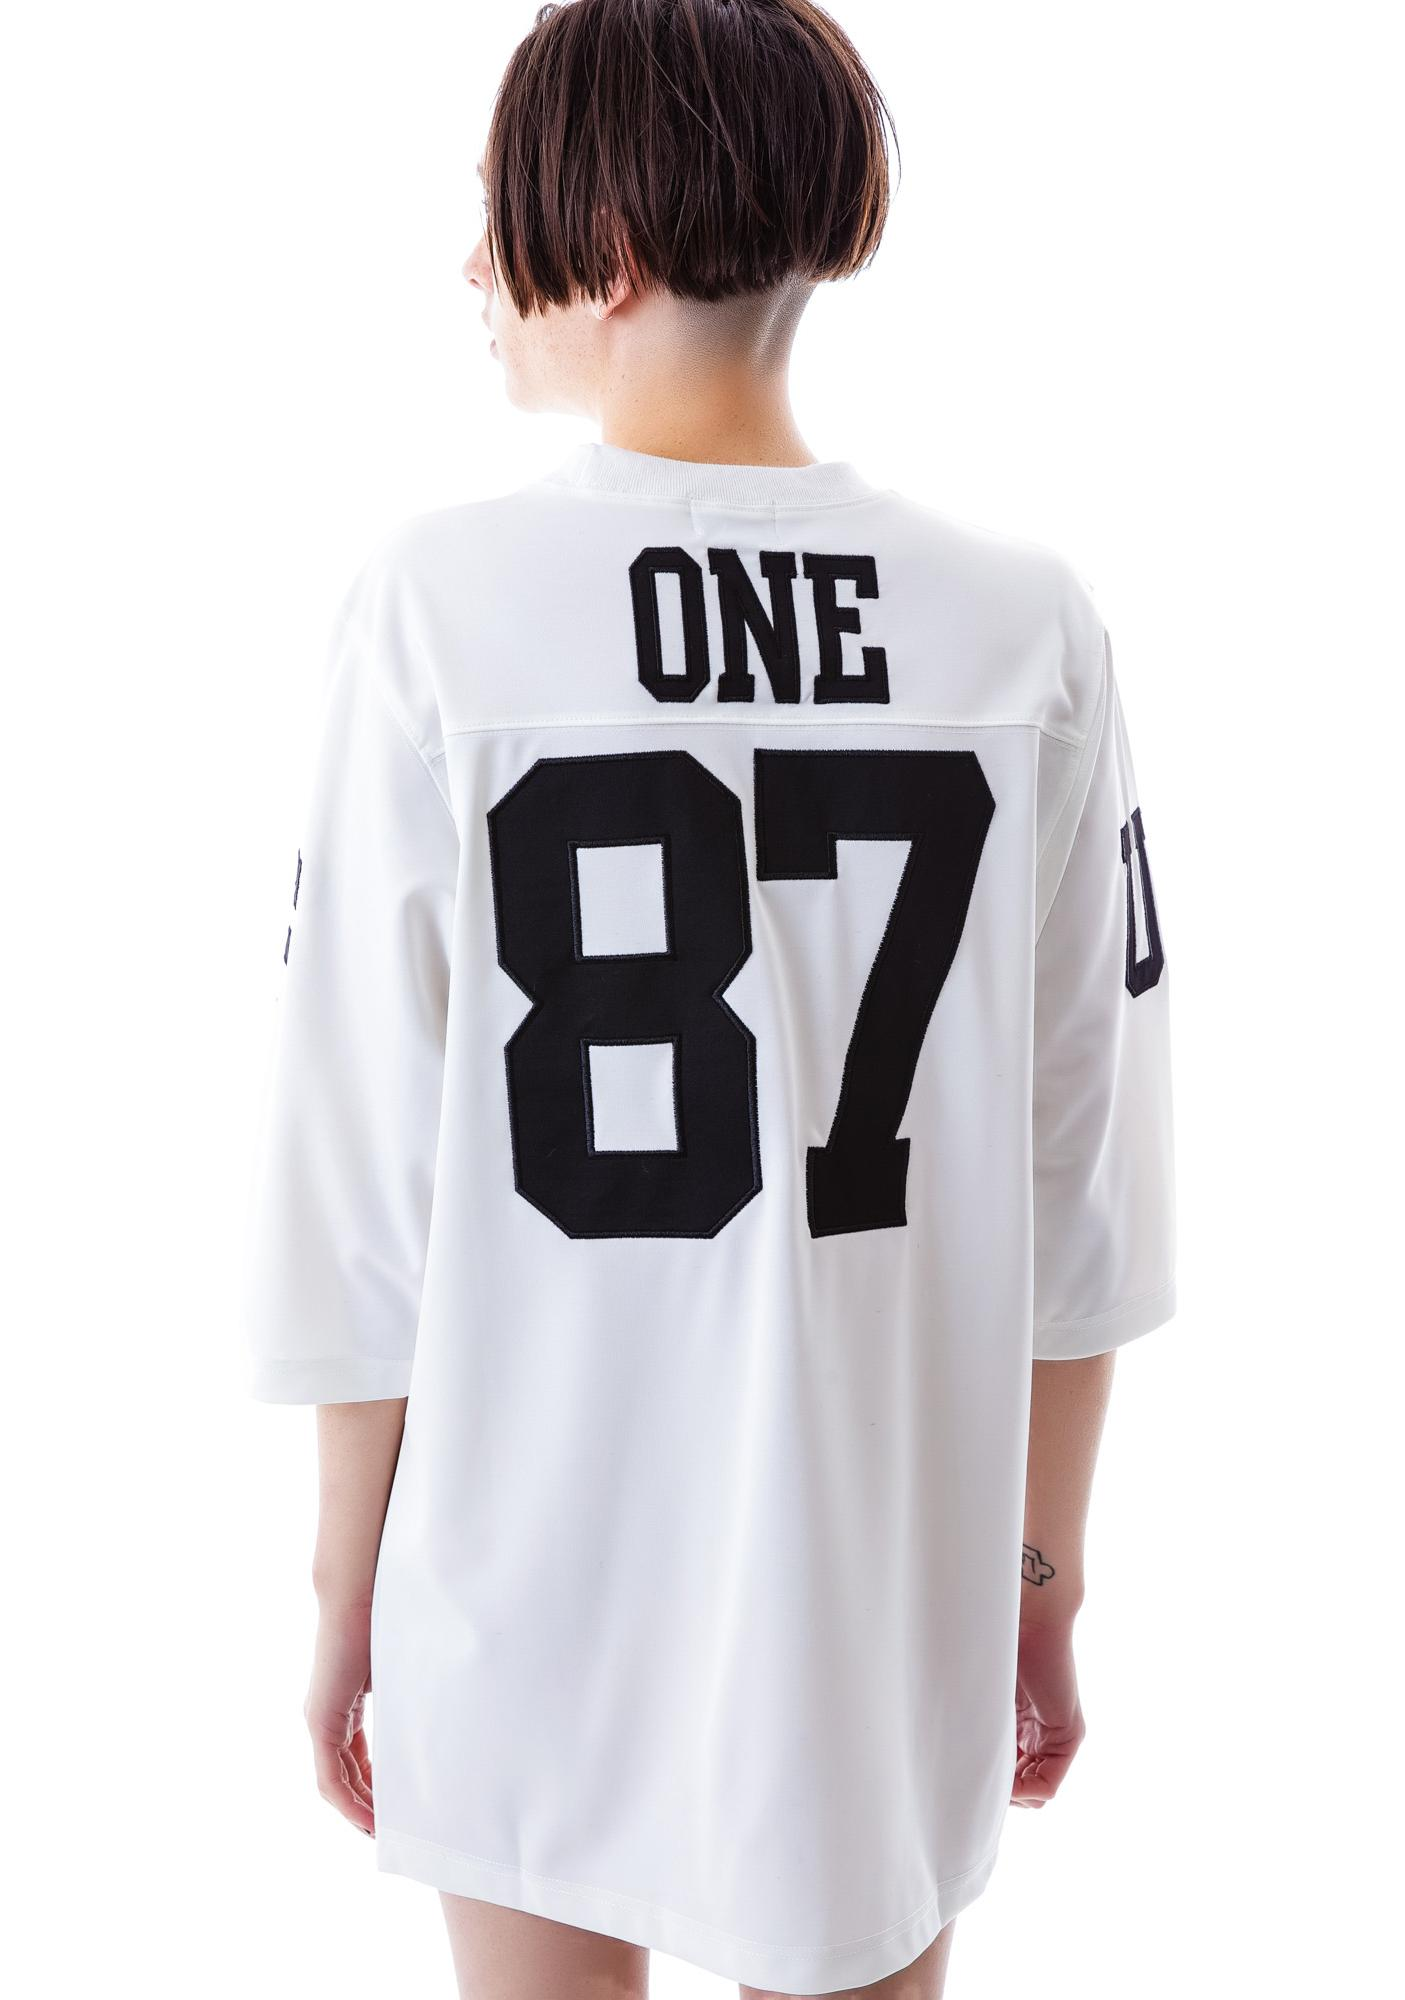 UNIF 187 Jersey